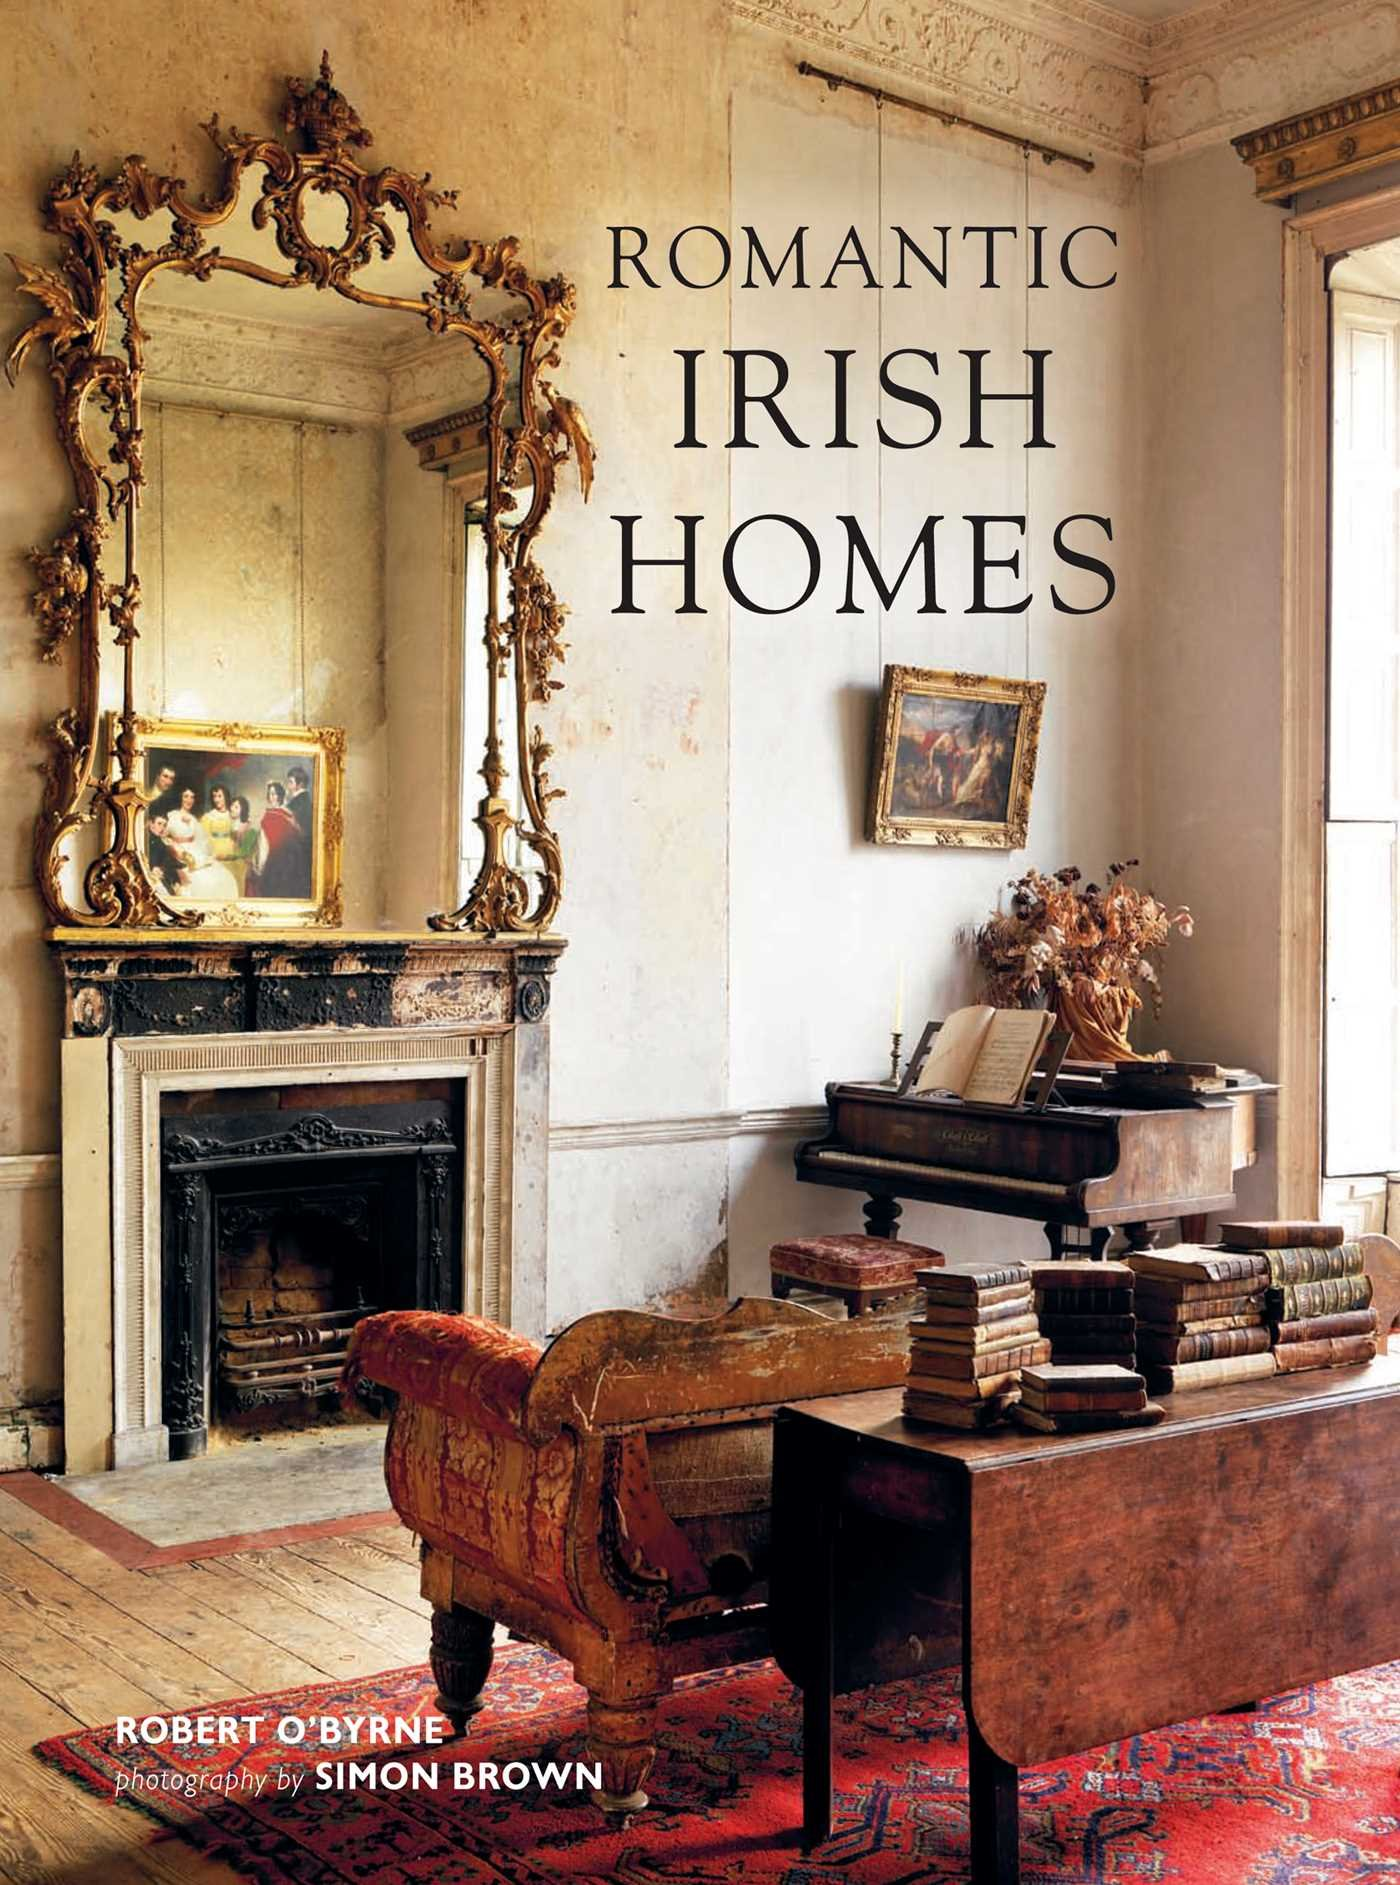 Romantic irish homes robert obyrne 9781908862907 amazon